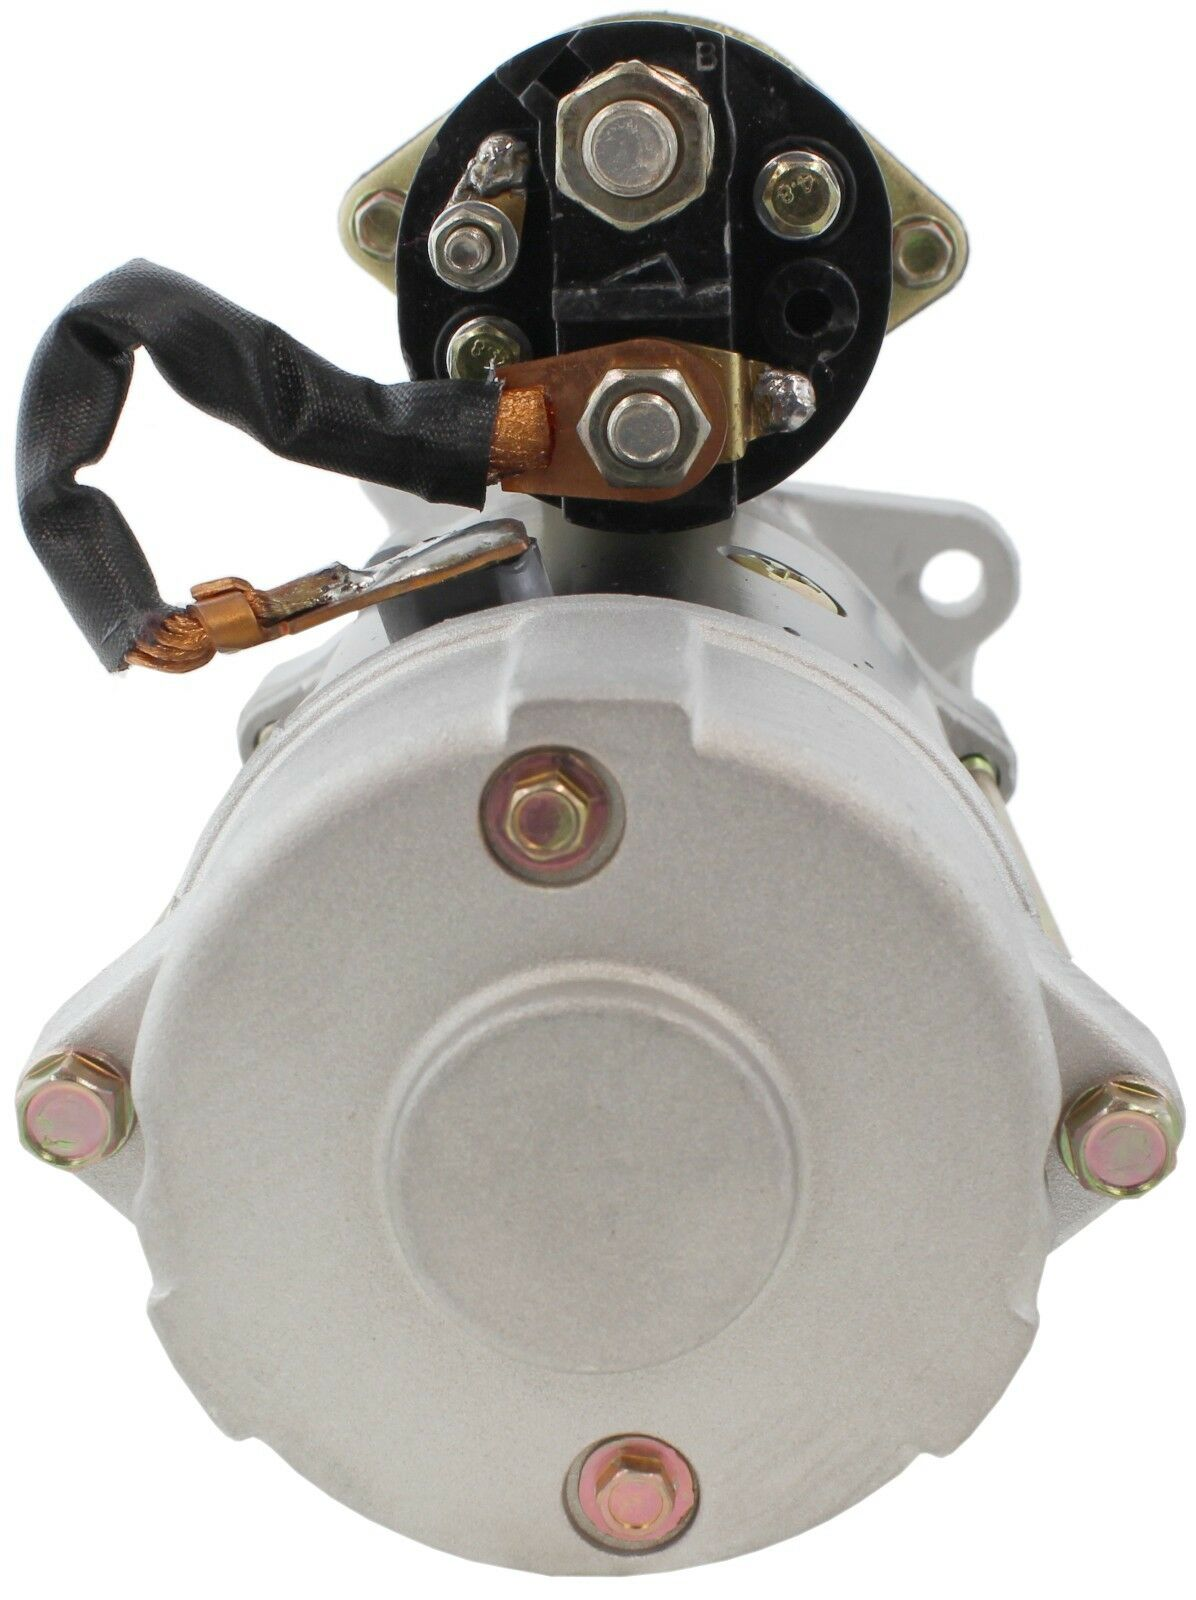 NEW STARTER FOR LISTER PETTER PERKINS 4-108 4-154 1113280 6575